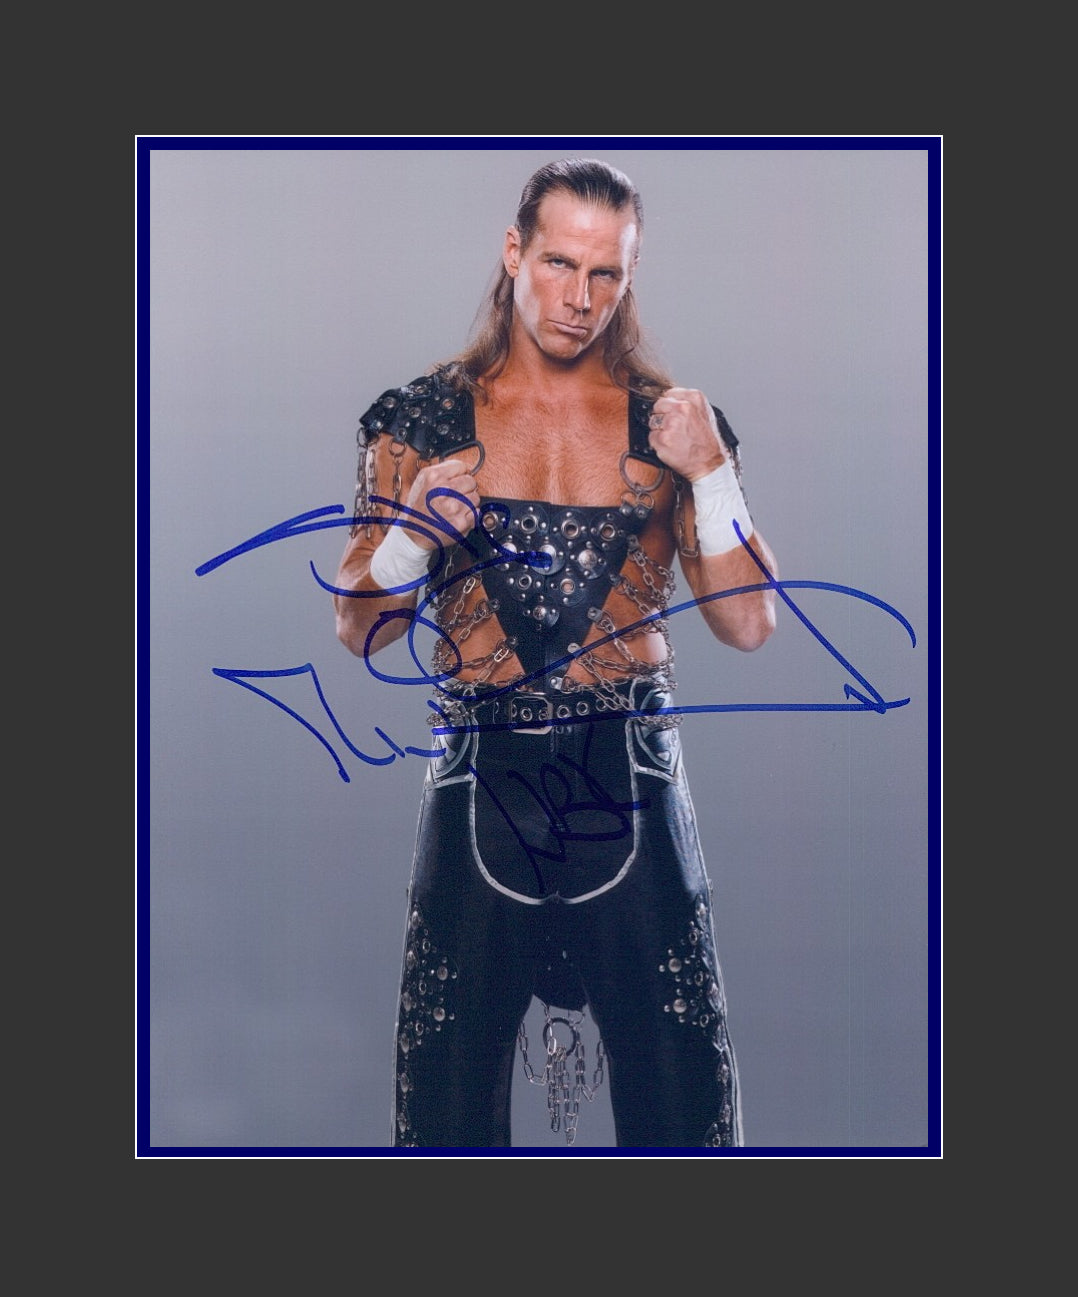 Shawn Michaels - WWE Wrestler